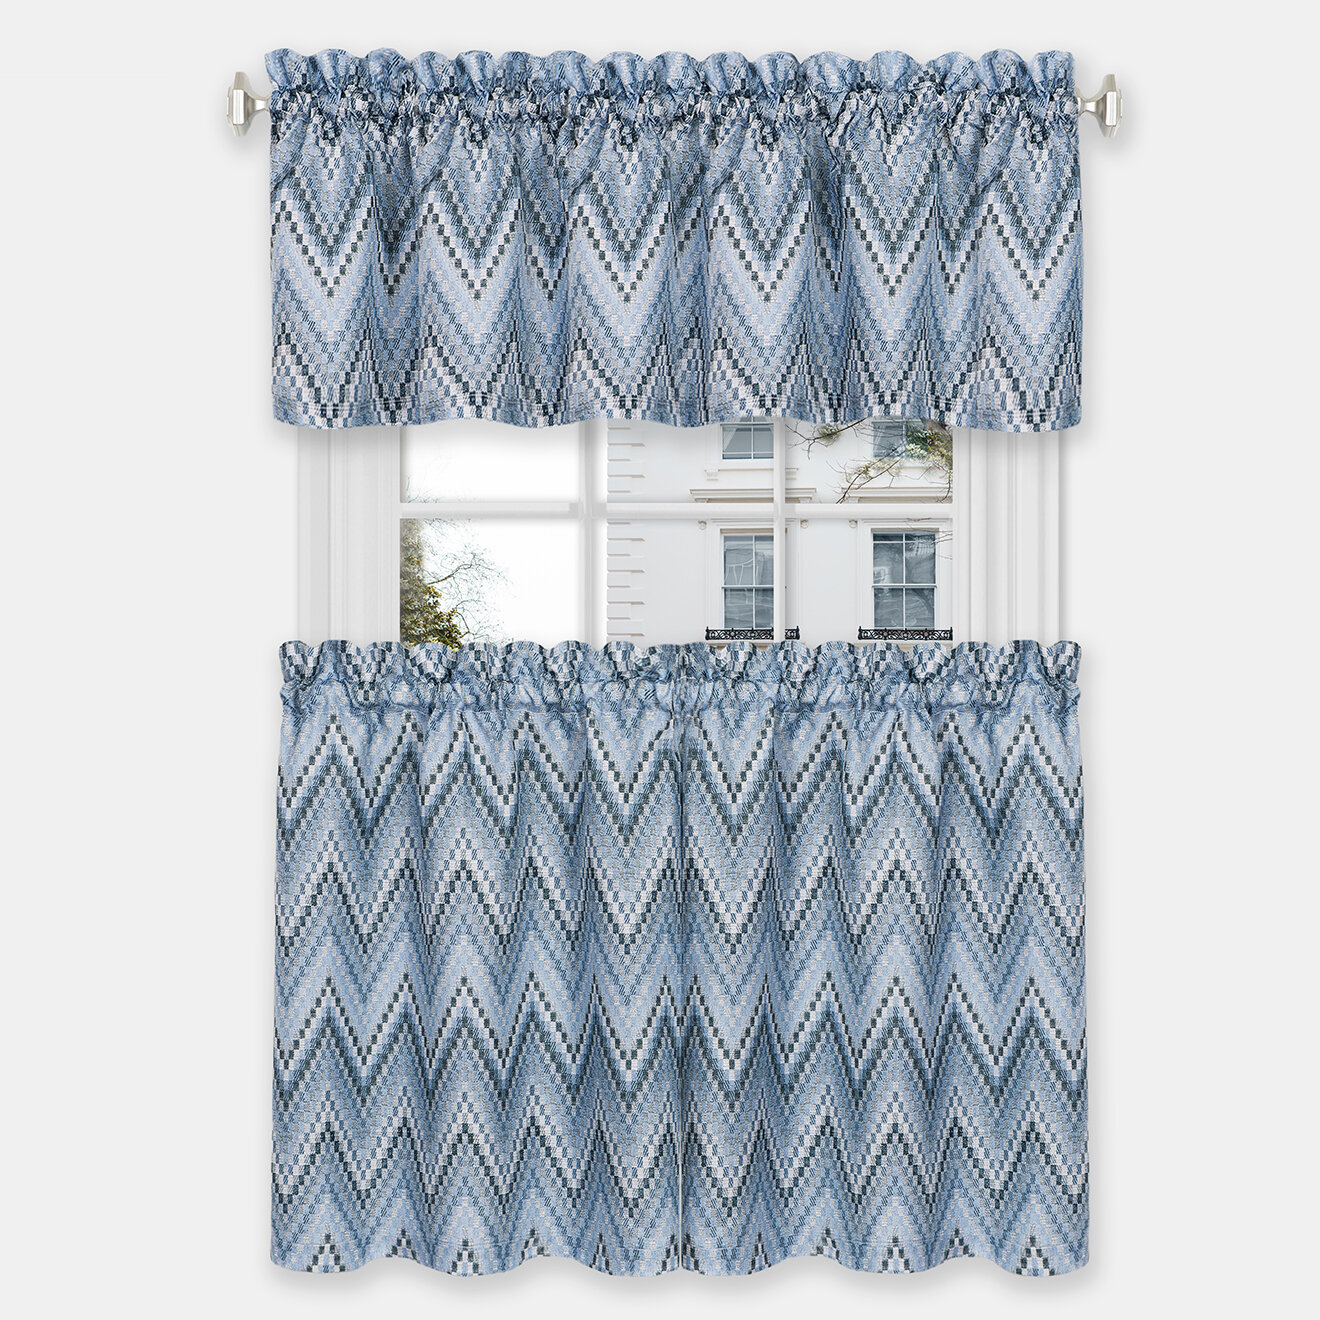 Soft Smooth Light Ice Blue Chenille Like Linen Effect Sofas Curtains New Fabric